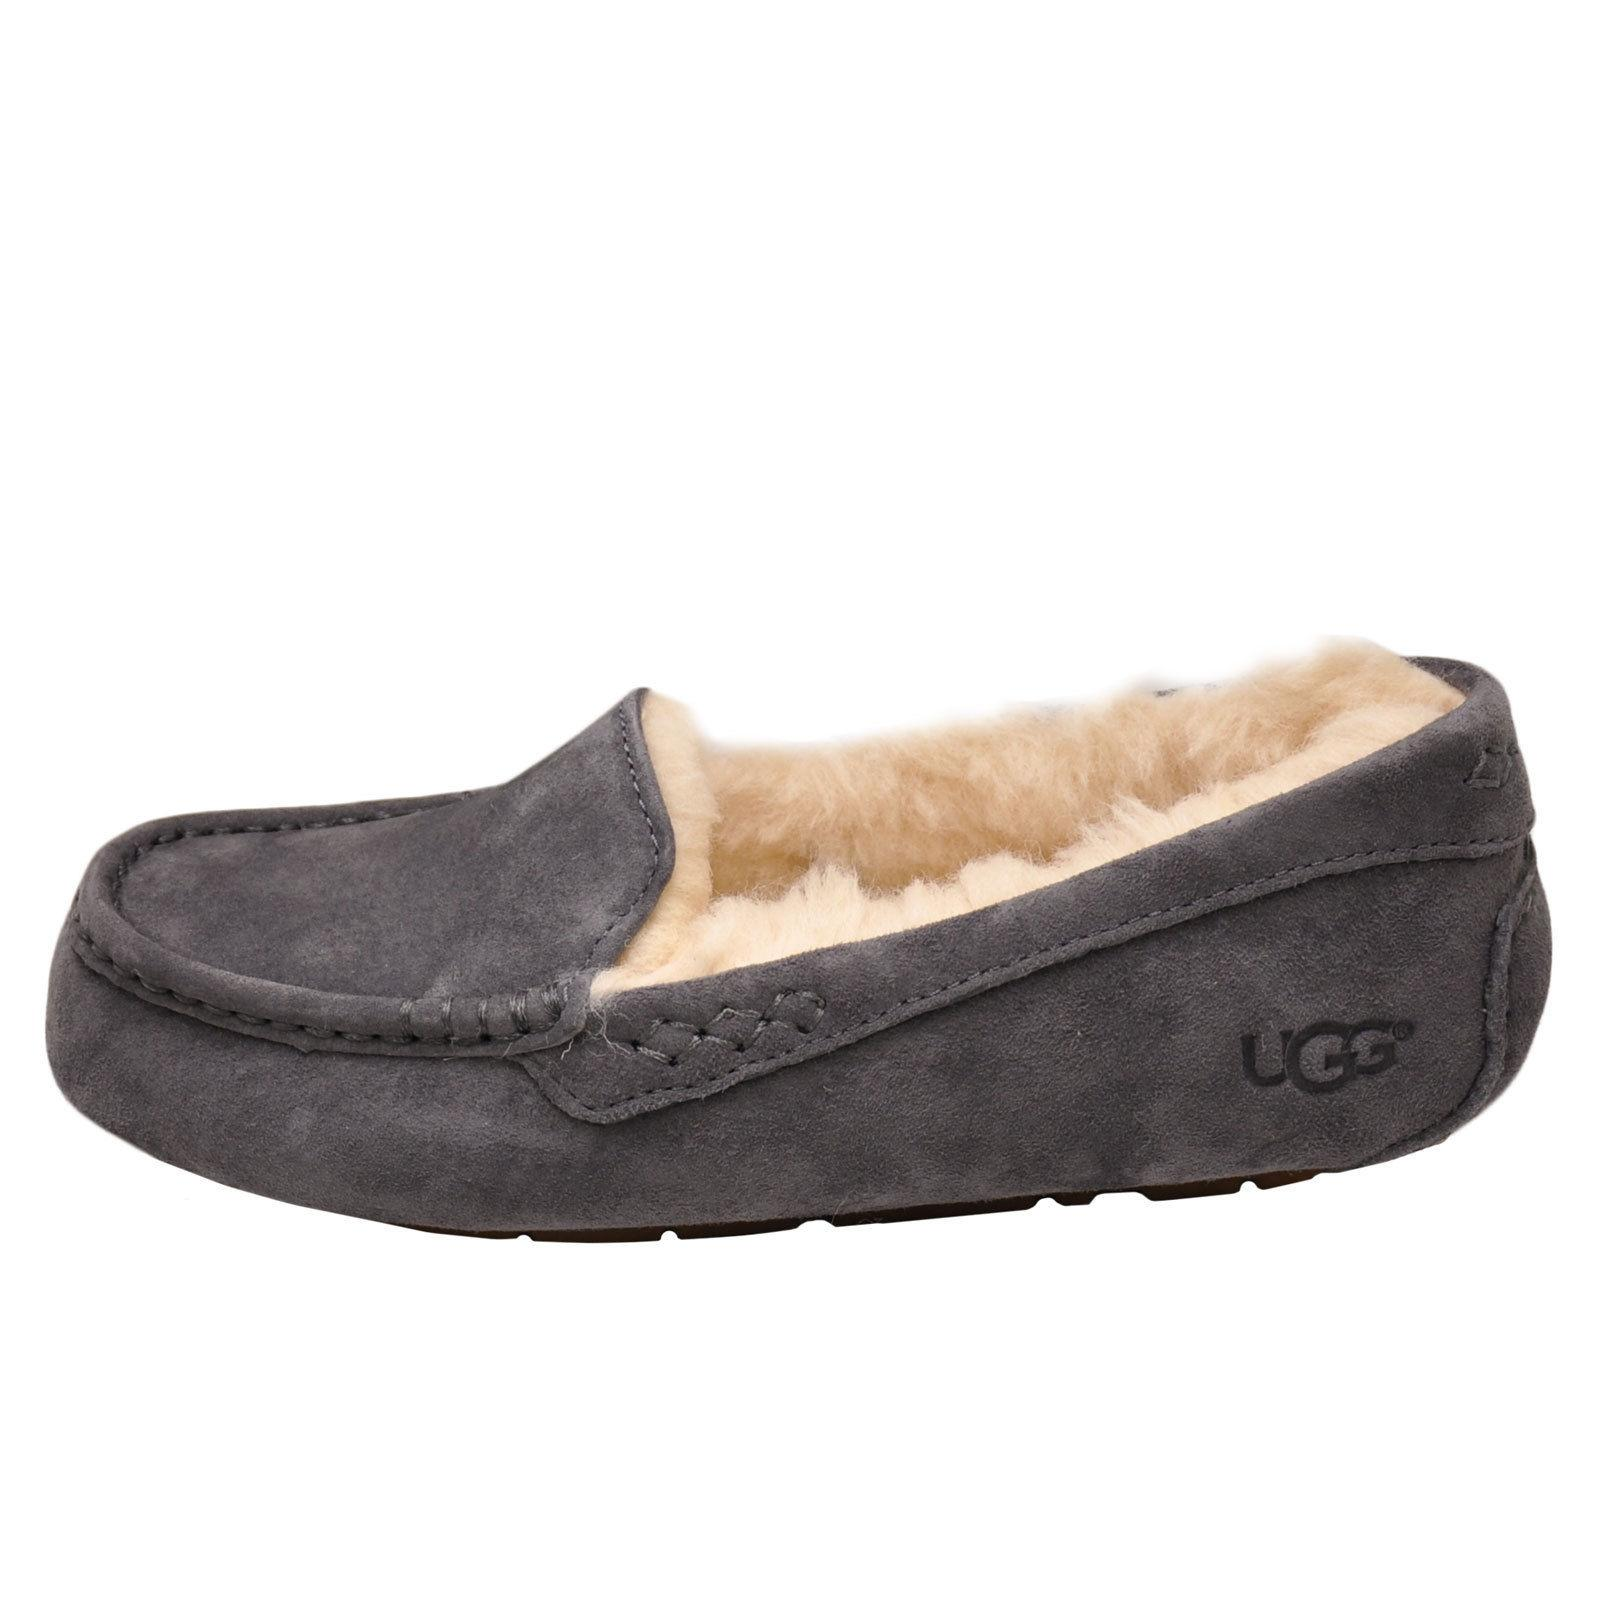 Best Ugg Nightfall Slipper Rubber C0397 56d58